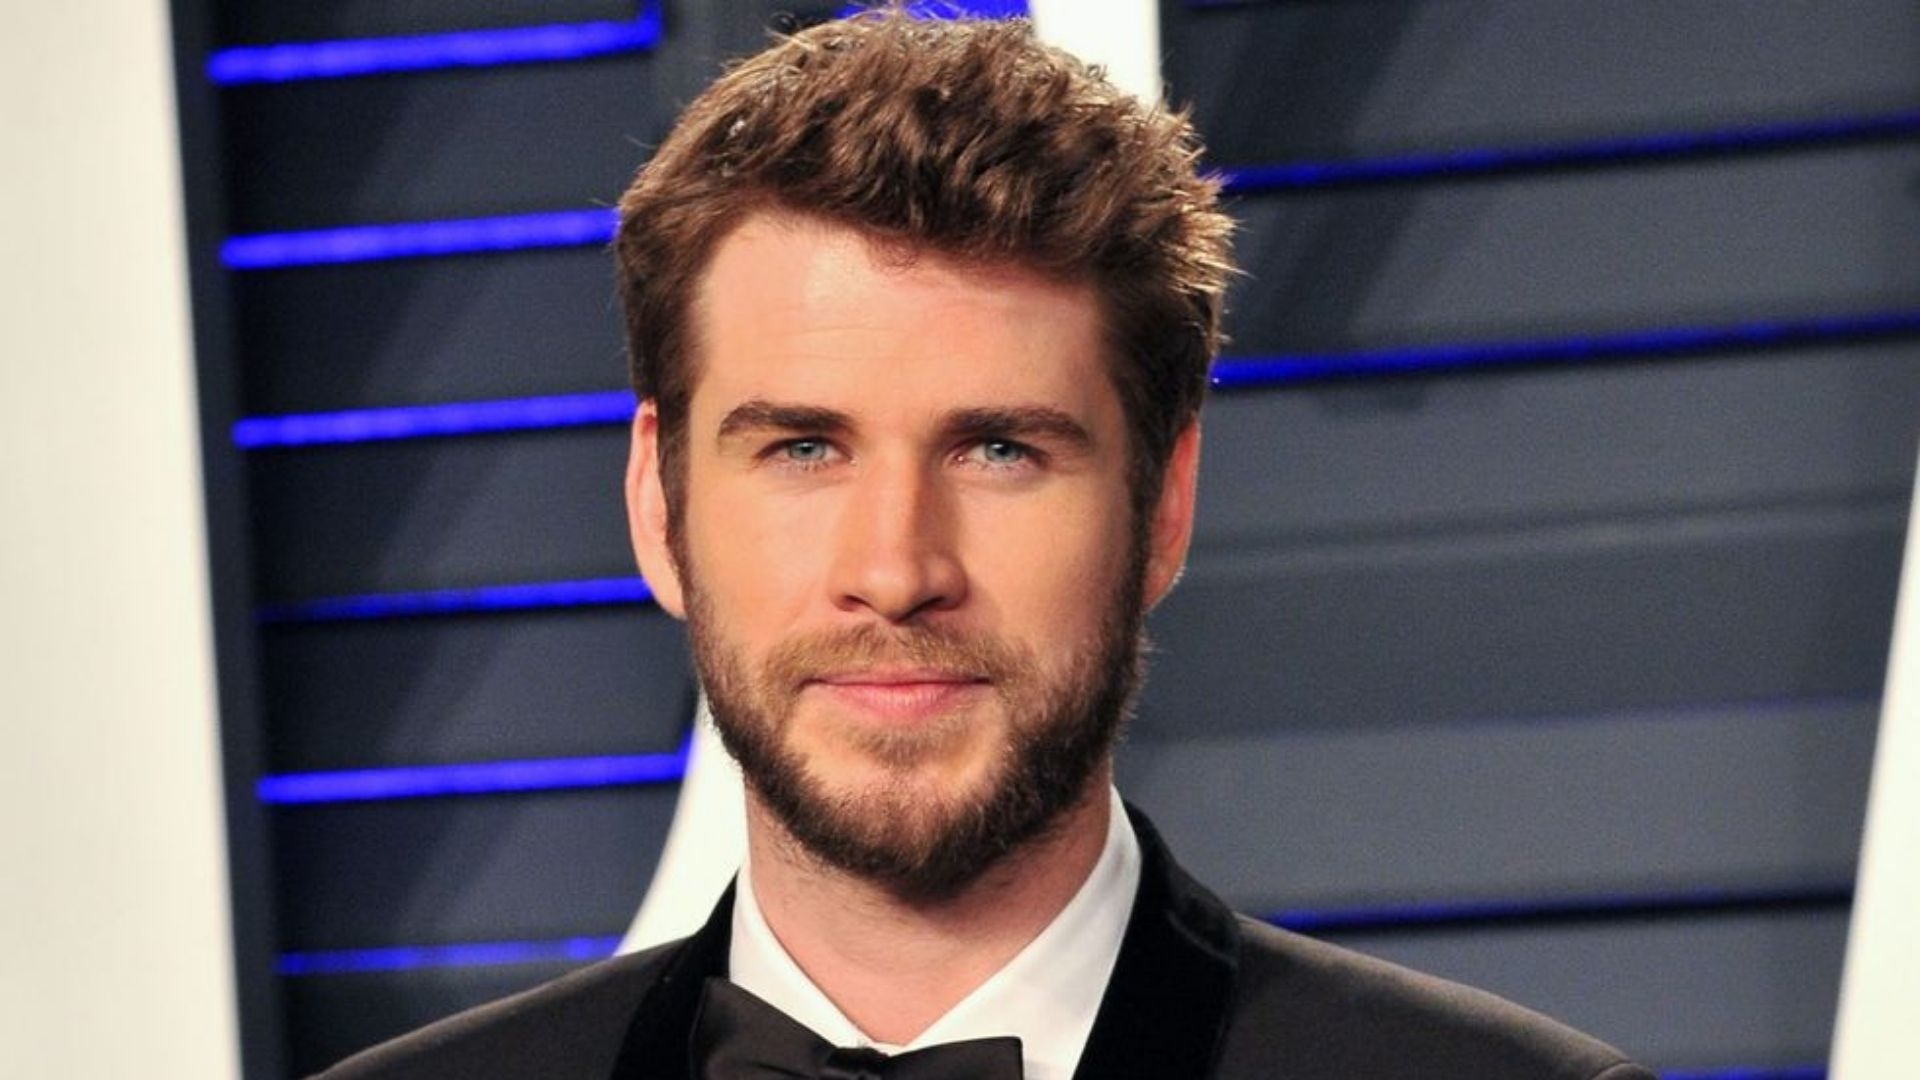 Liam Hemsworth Is Facing A Dhs550,900 Lawsuit Over An Instagram Post